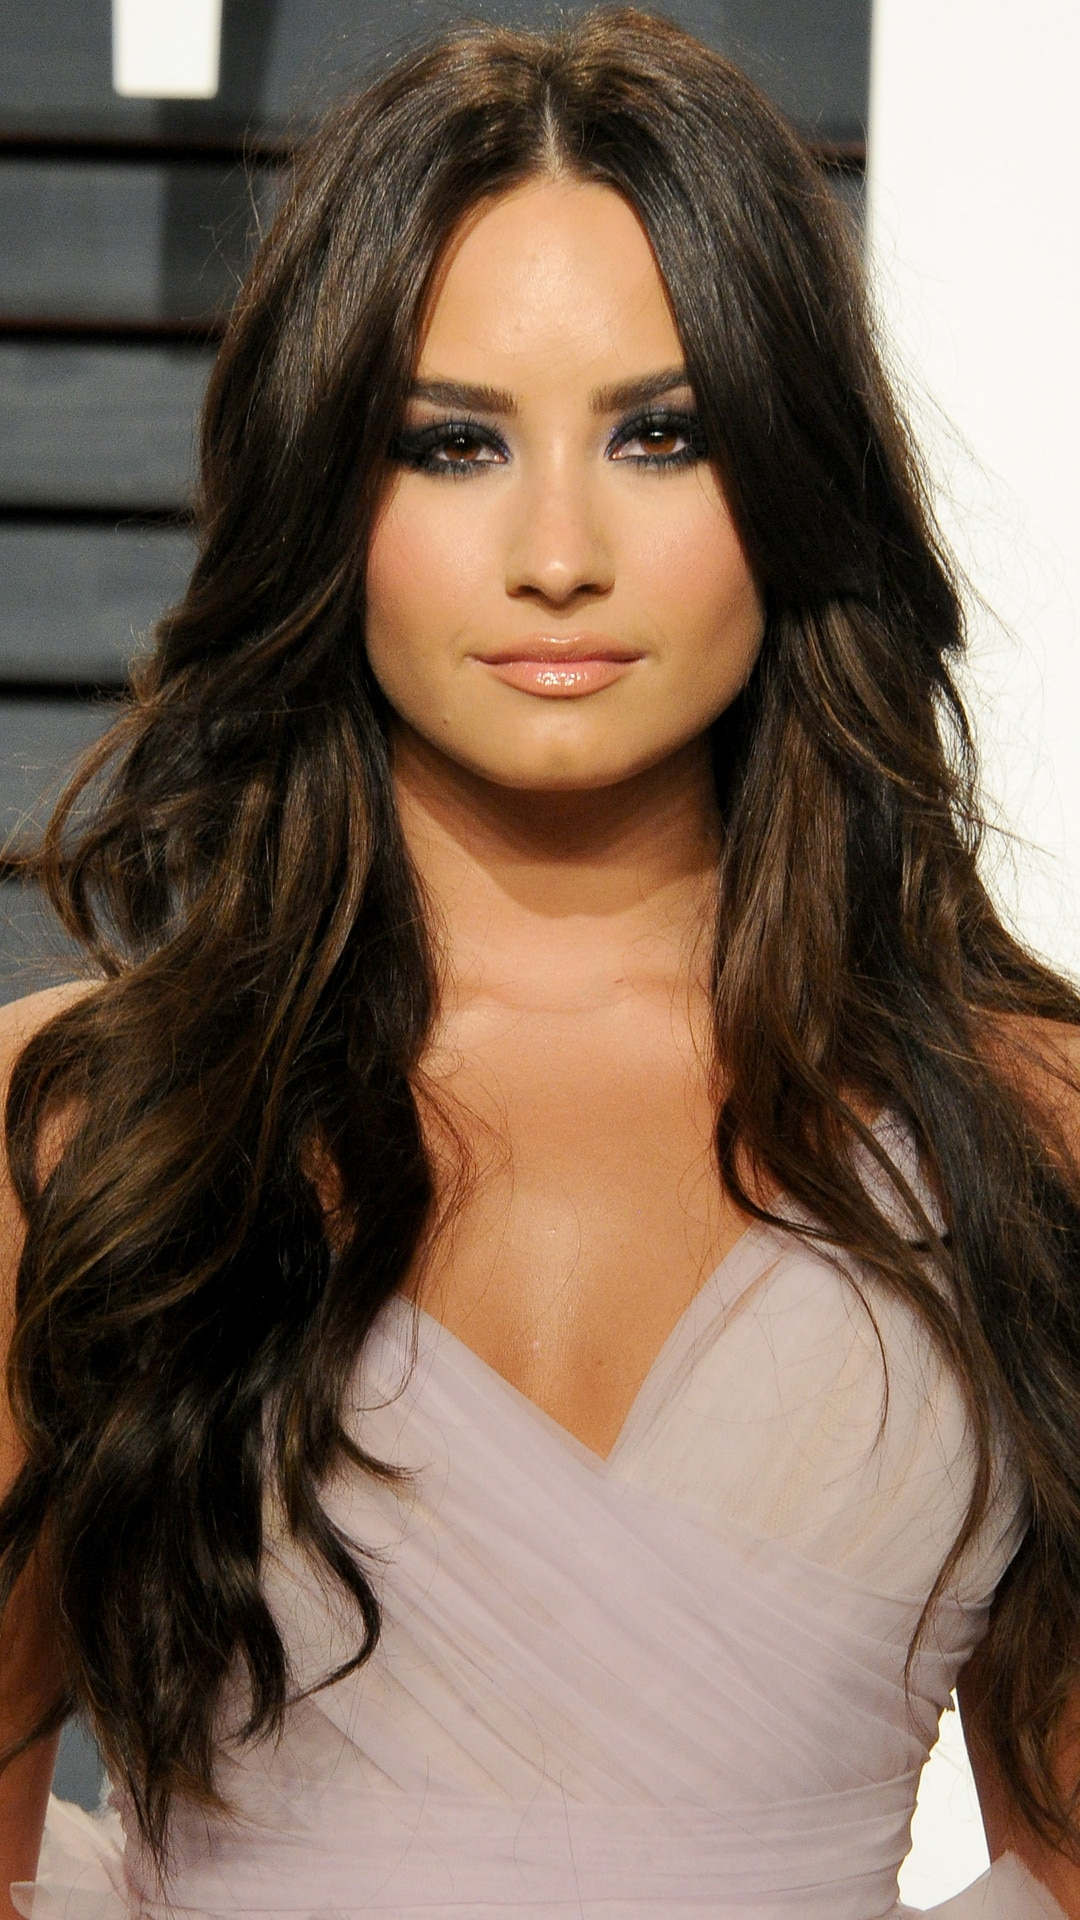 Images Demi Lovato nude (67 photo), Tits, Sideboobs, Selfie, braless 2006